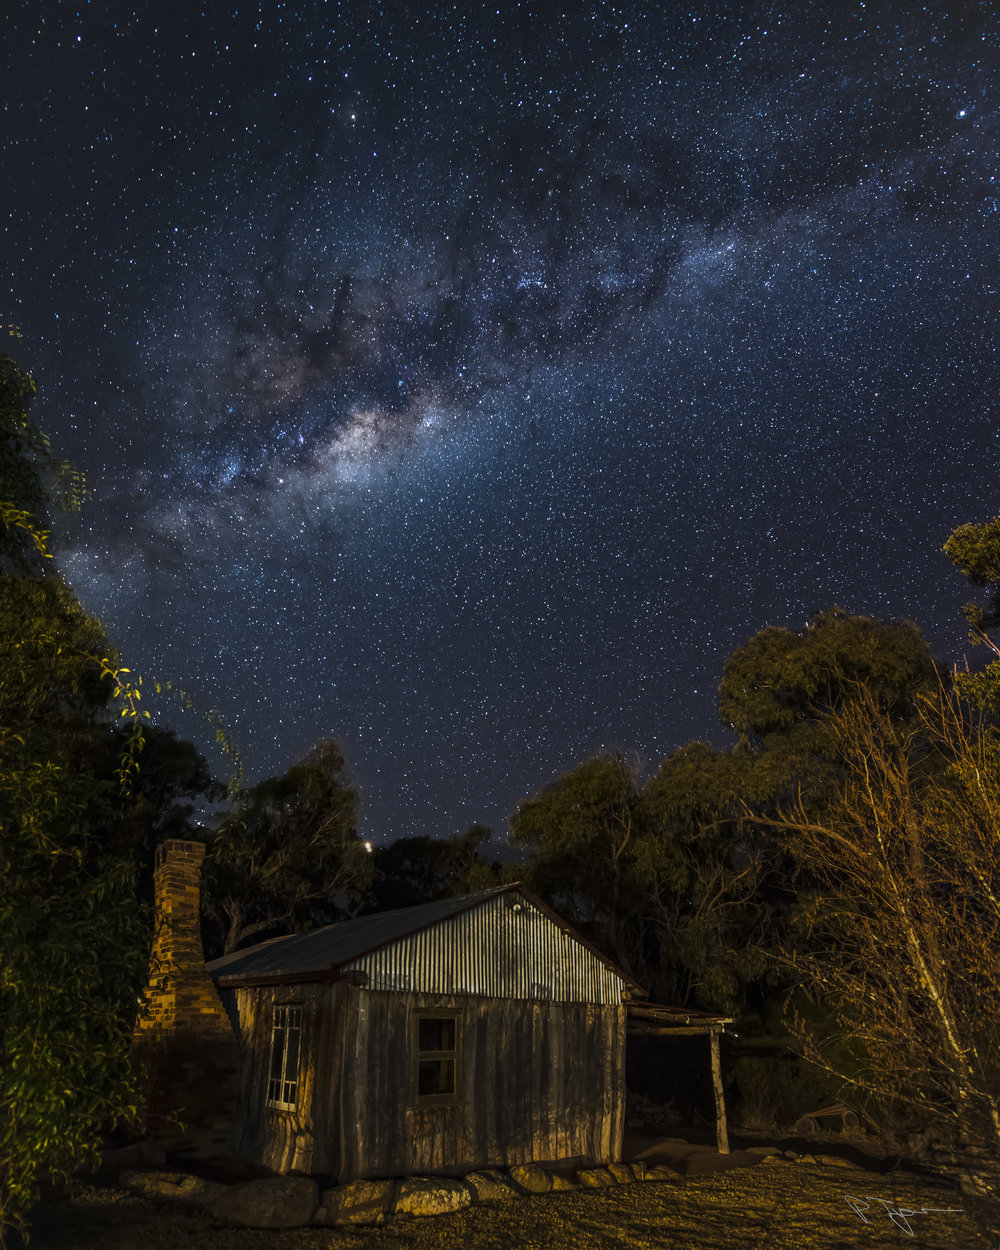 Milky Way by our guest Phil Tyrer